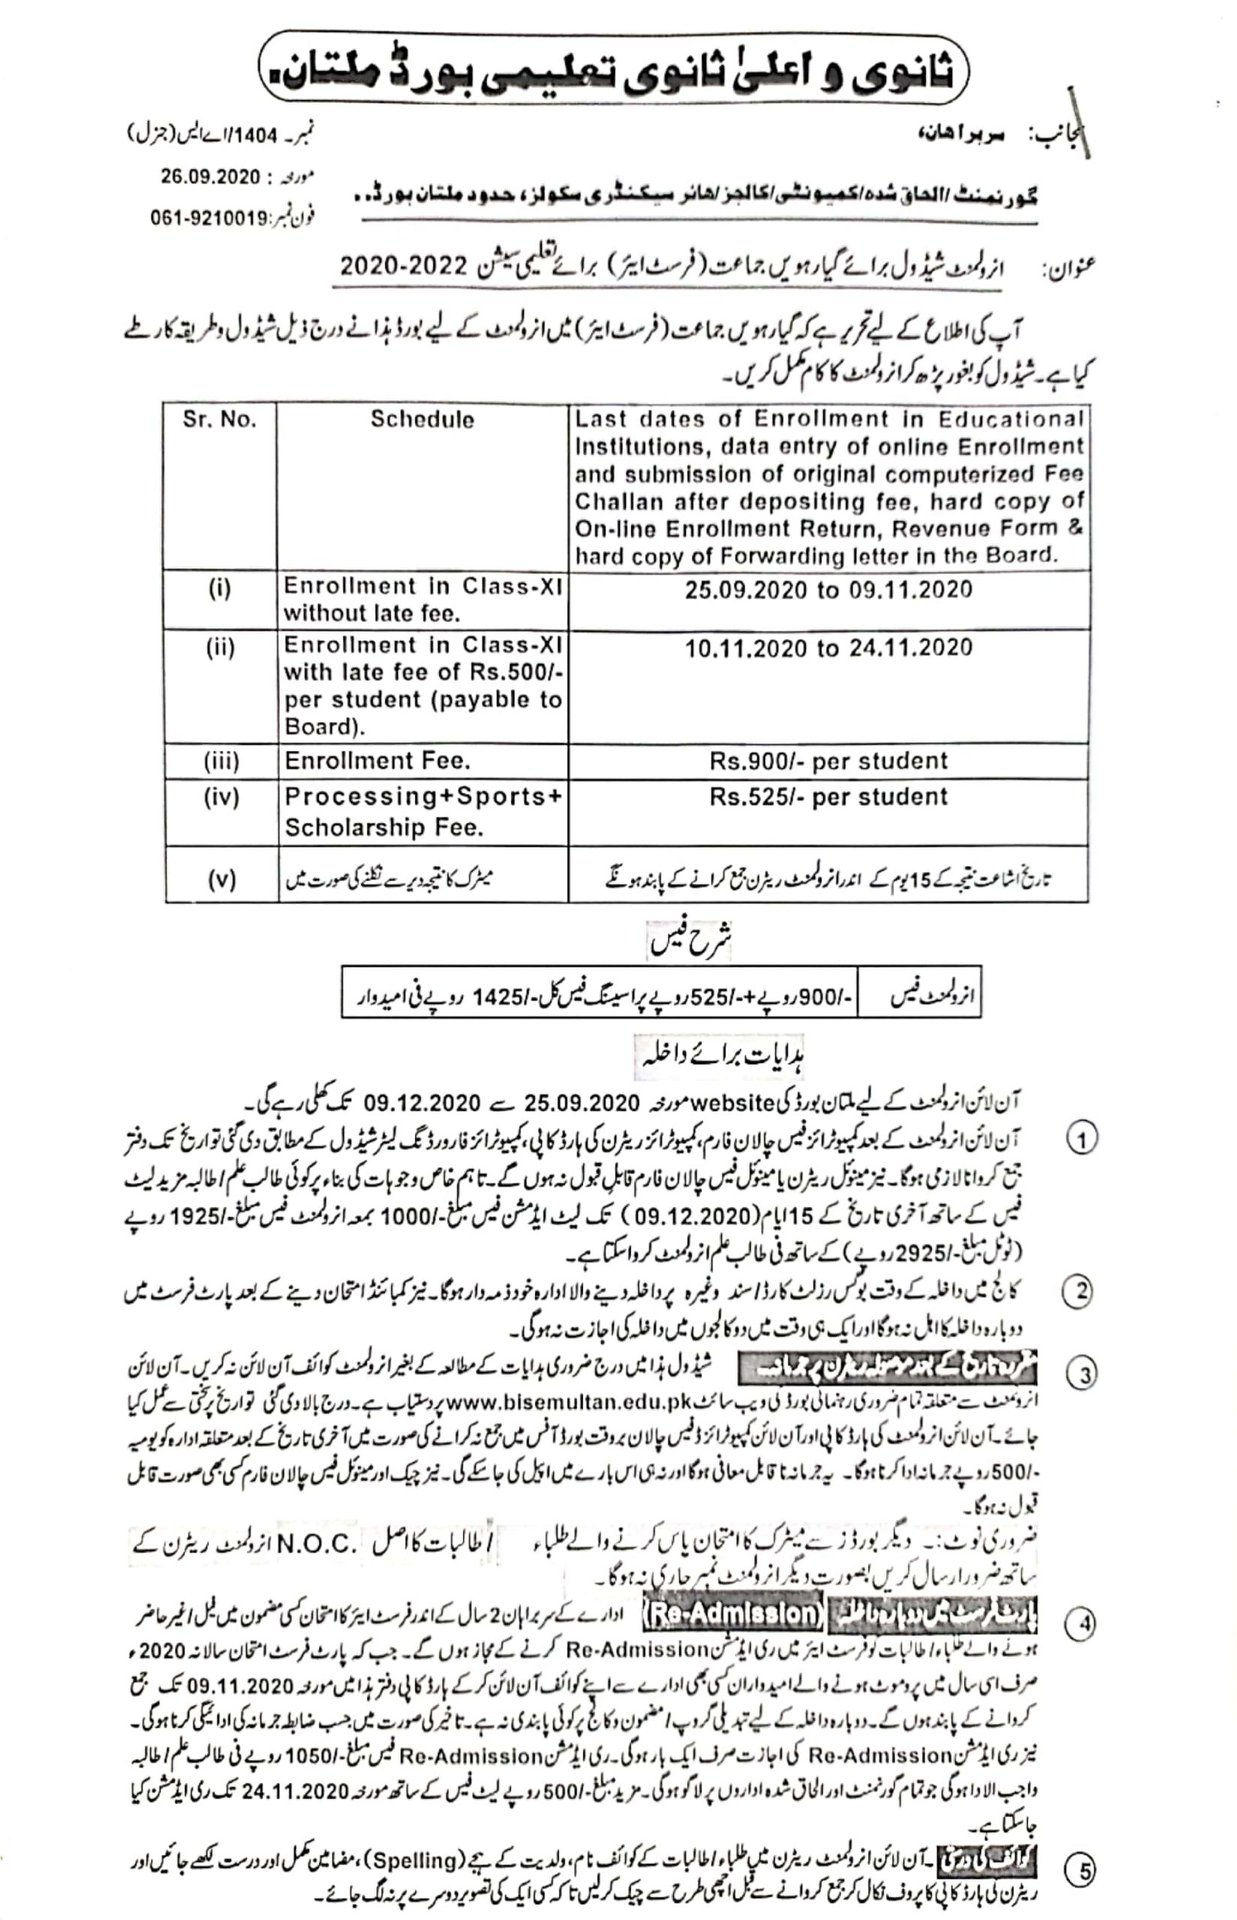 BISE Multan Registration Schedule 2020-21 for Class 1st Year